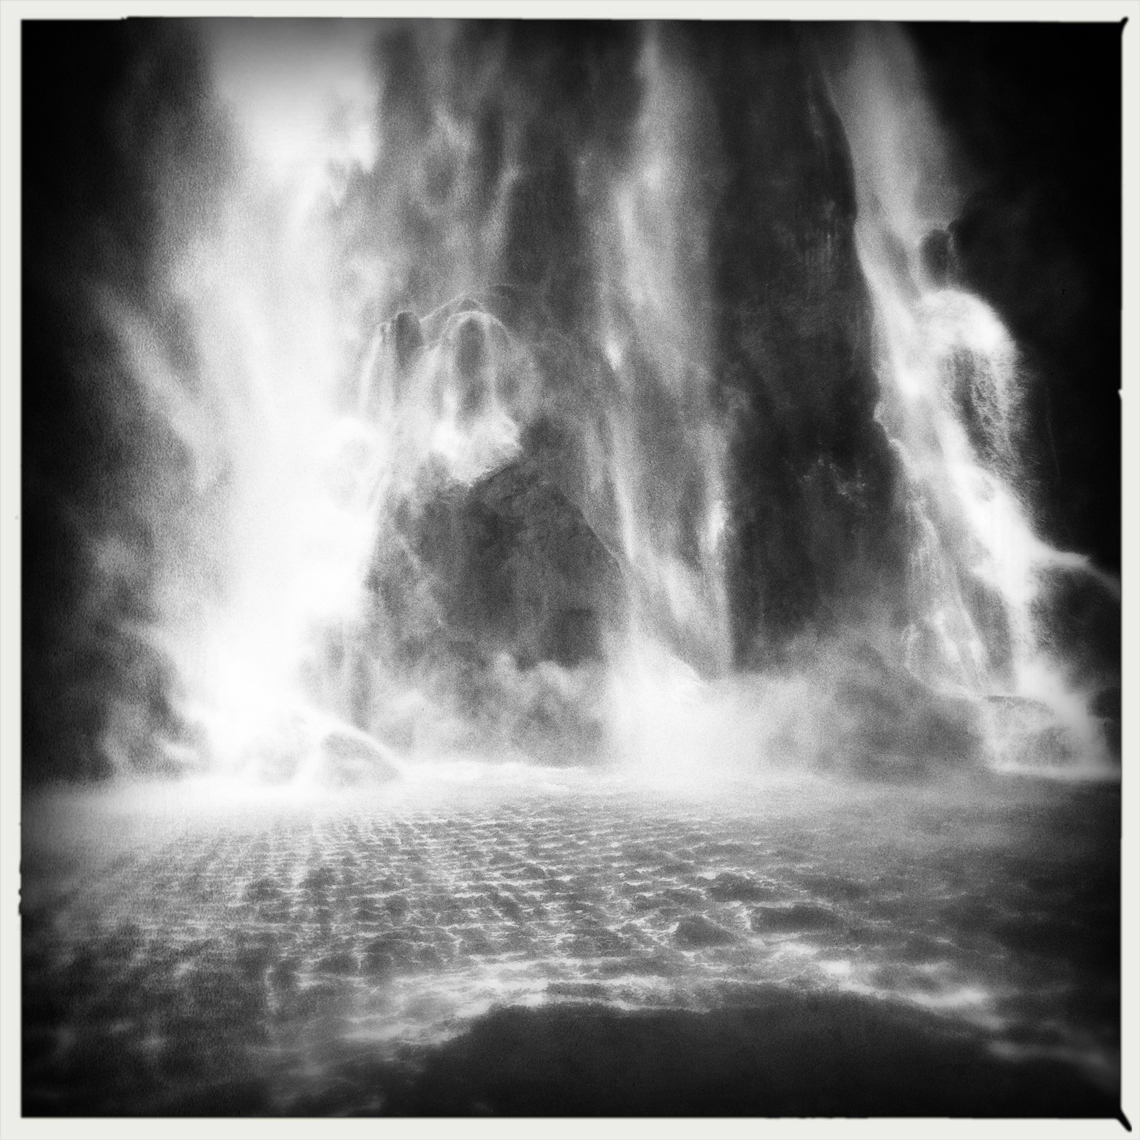 Jon Wyatt Photography - Waterfall in Milford Sound, New Zealand. Hipstamatic